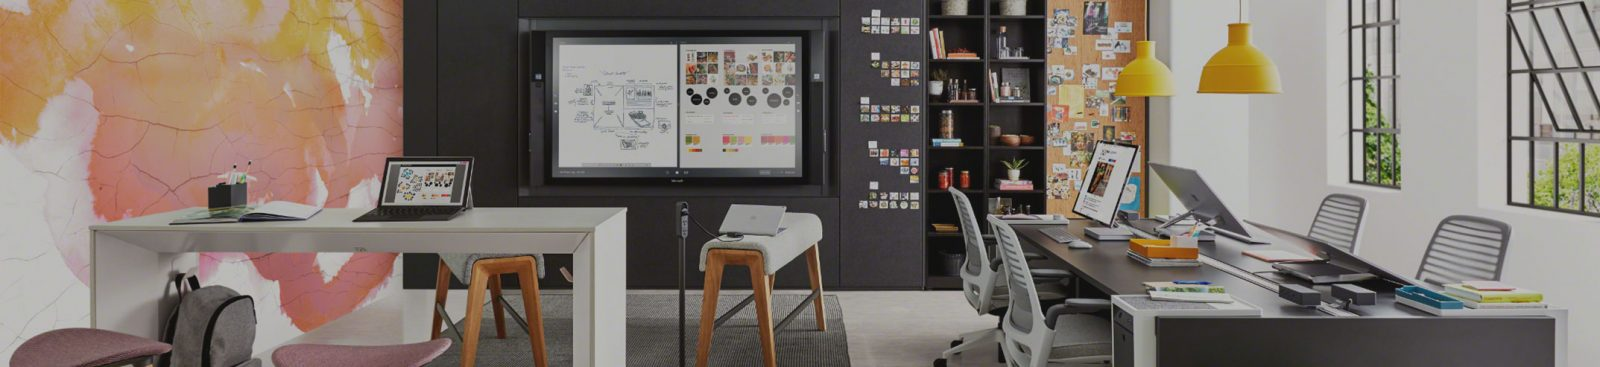 The importance of dedicated creative spaces image